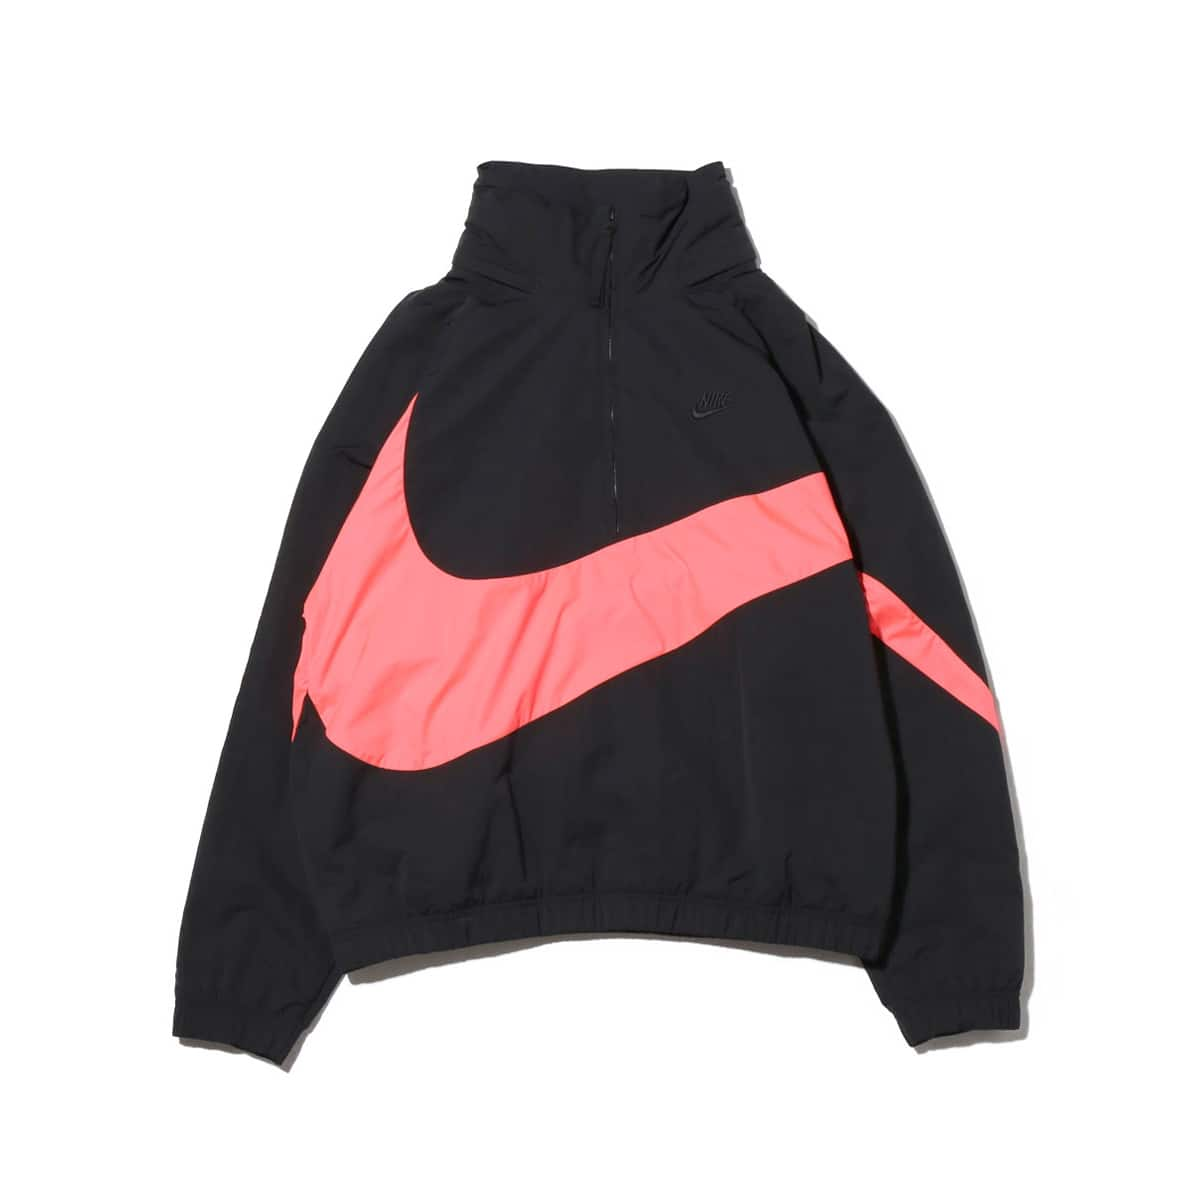 NIKE AS M NSW JKT HD ANRK WVN QS  BLACK/HOT PUNCH/BLACK_photo_large